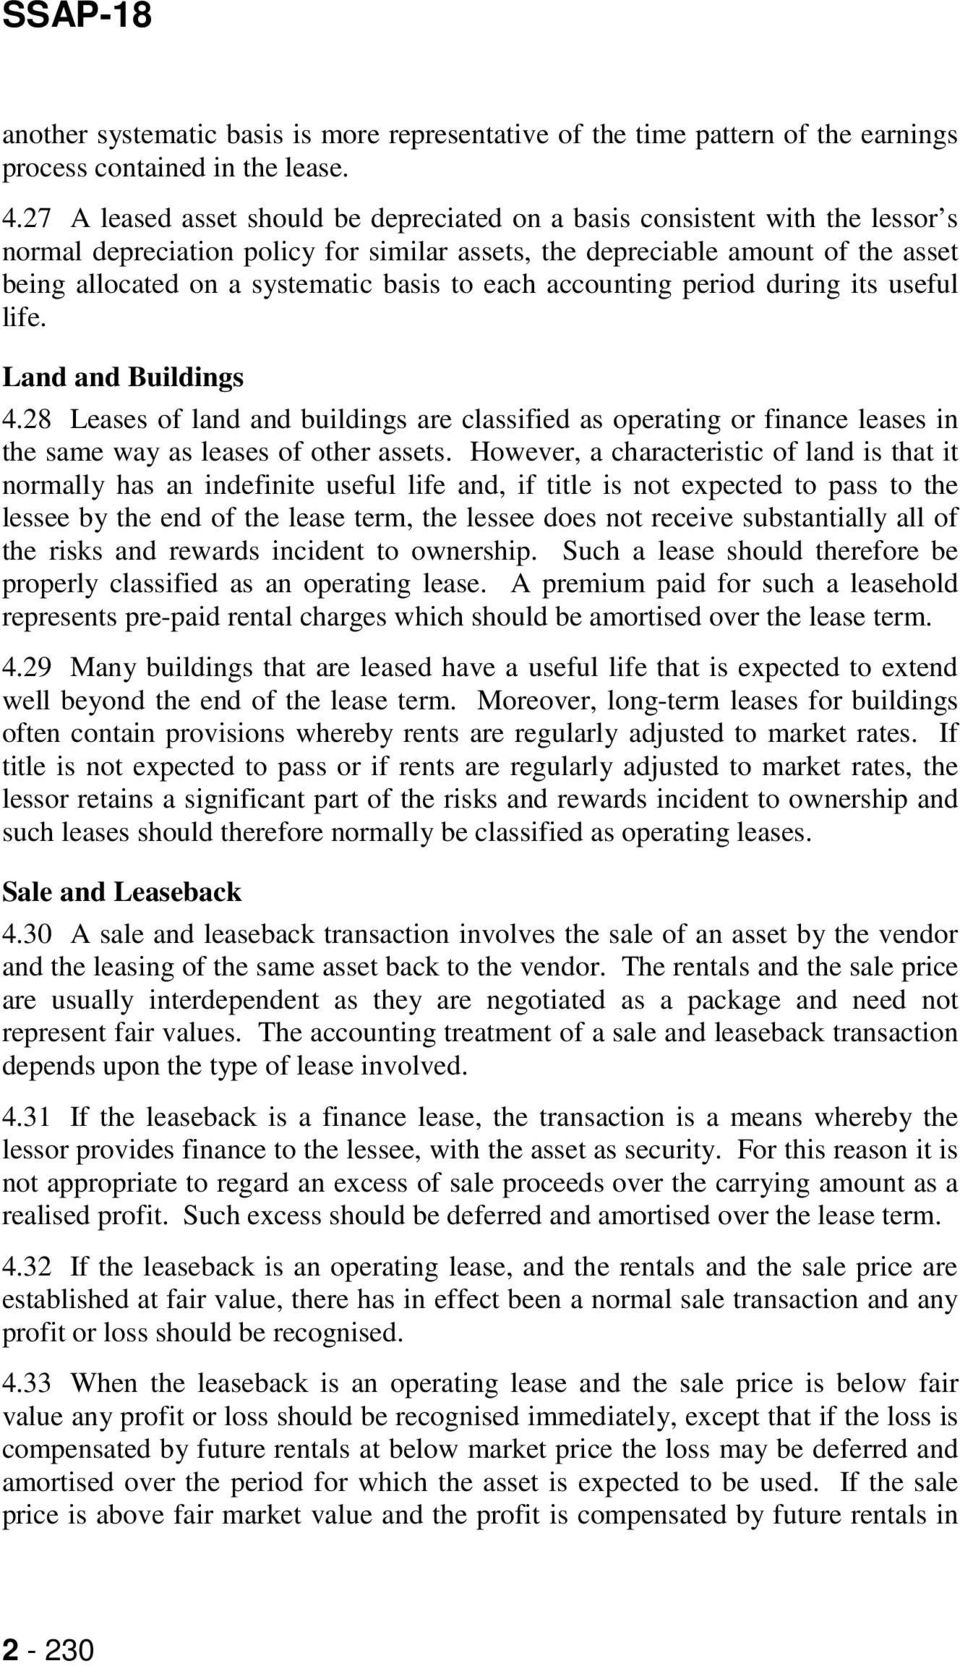 basis to each accounting period during its useful life. Land and Buildings 4.28 Leases of land and buildings are classified as operating or finance leases in the same way as leases of other assets.